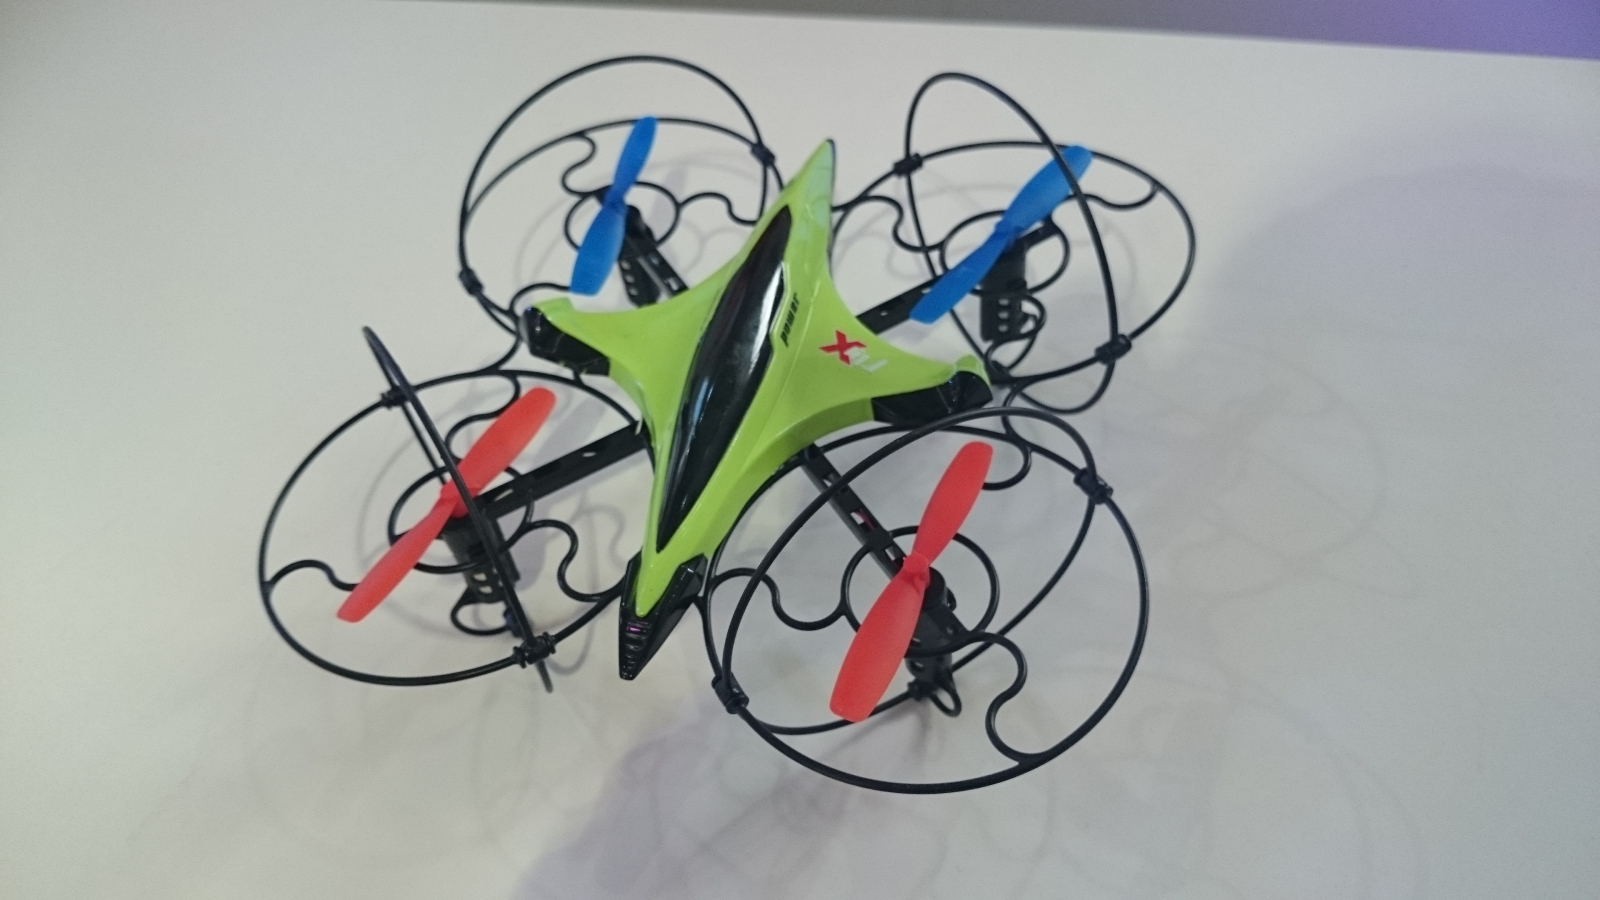 x-voice drone flying gadgets